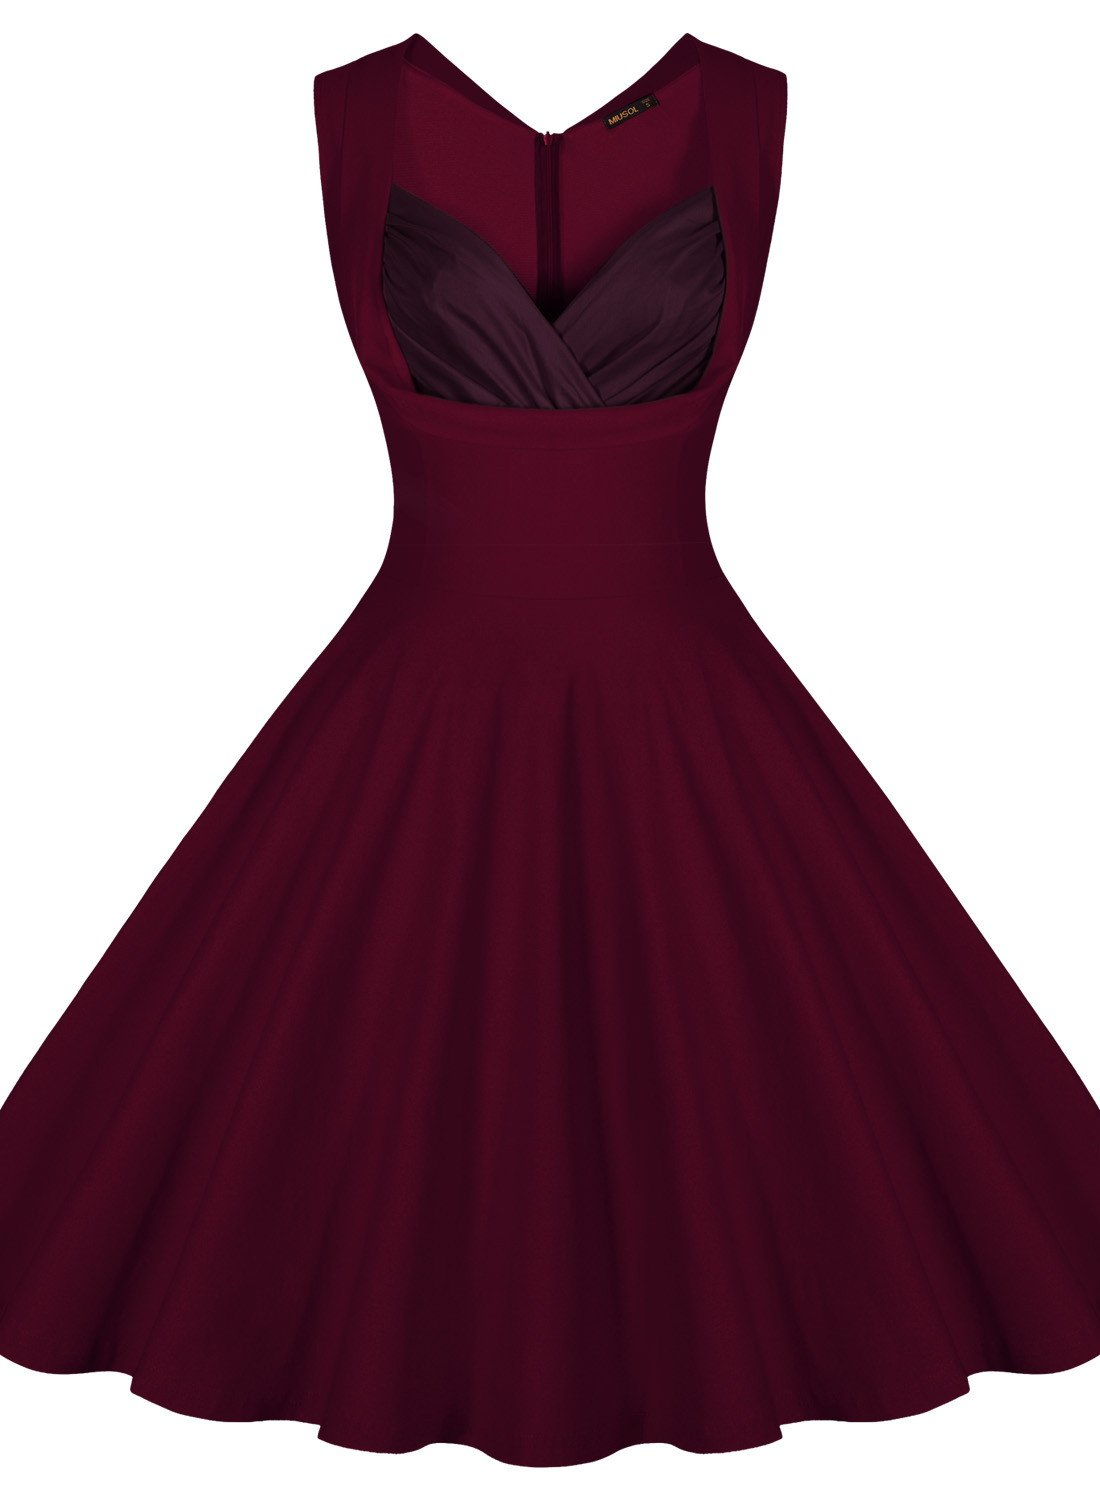 Miusol Women's Vintage 1950s V-Neck Sleeveless Evening Party Swing Dress,Red,Medium